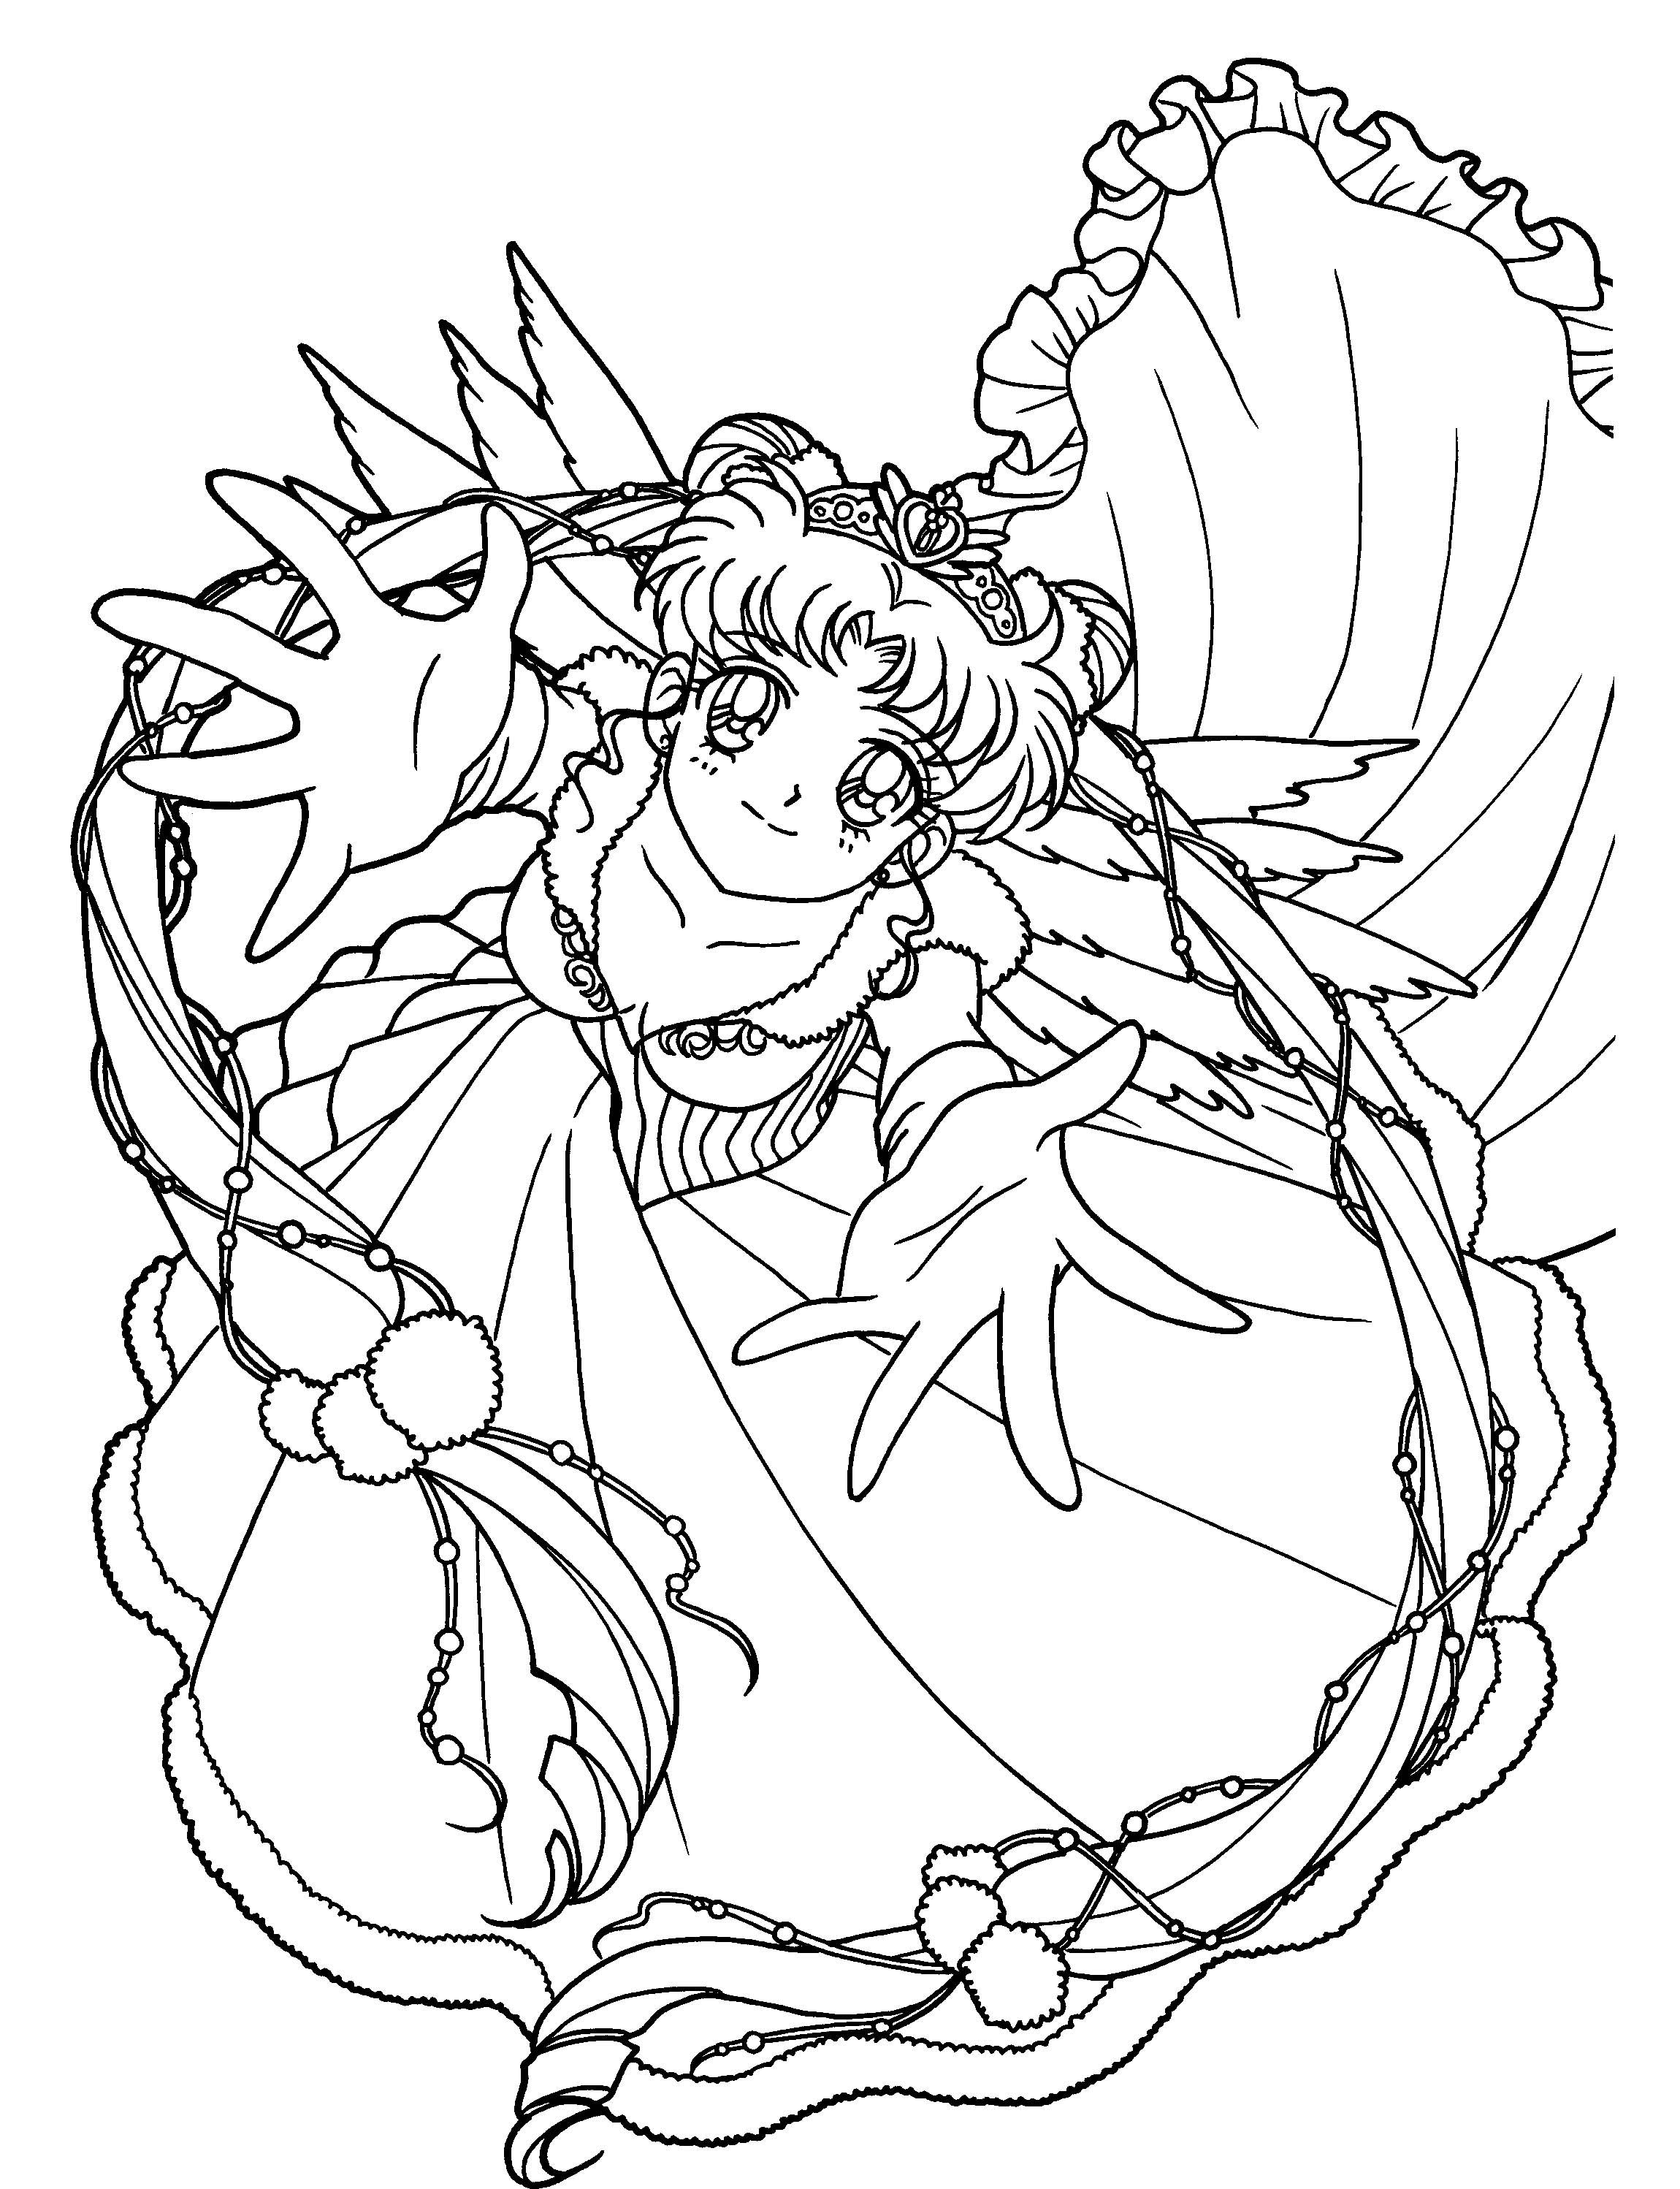 Princess serenity coloring pages - Sailor Moon Coloring Pages Online